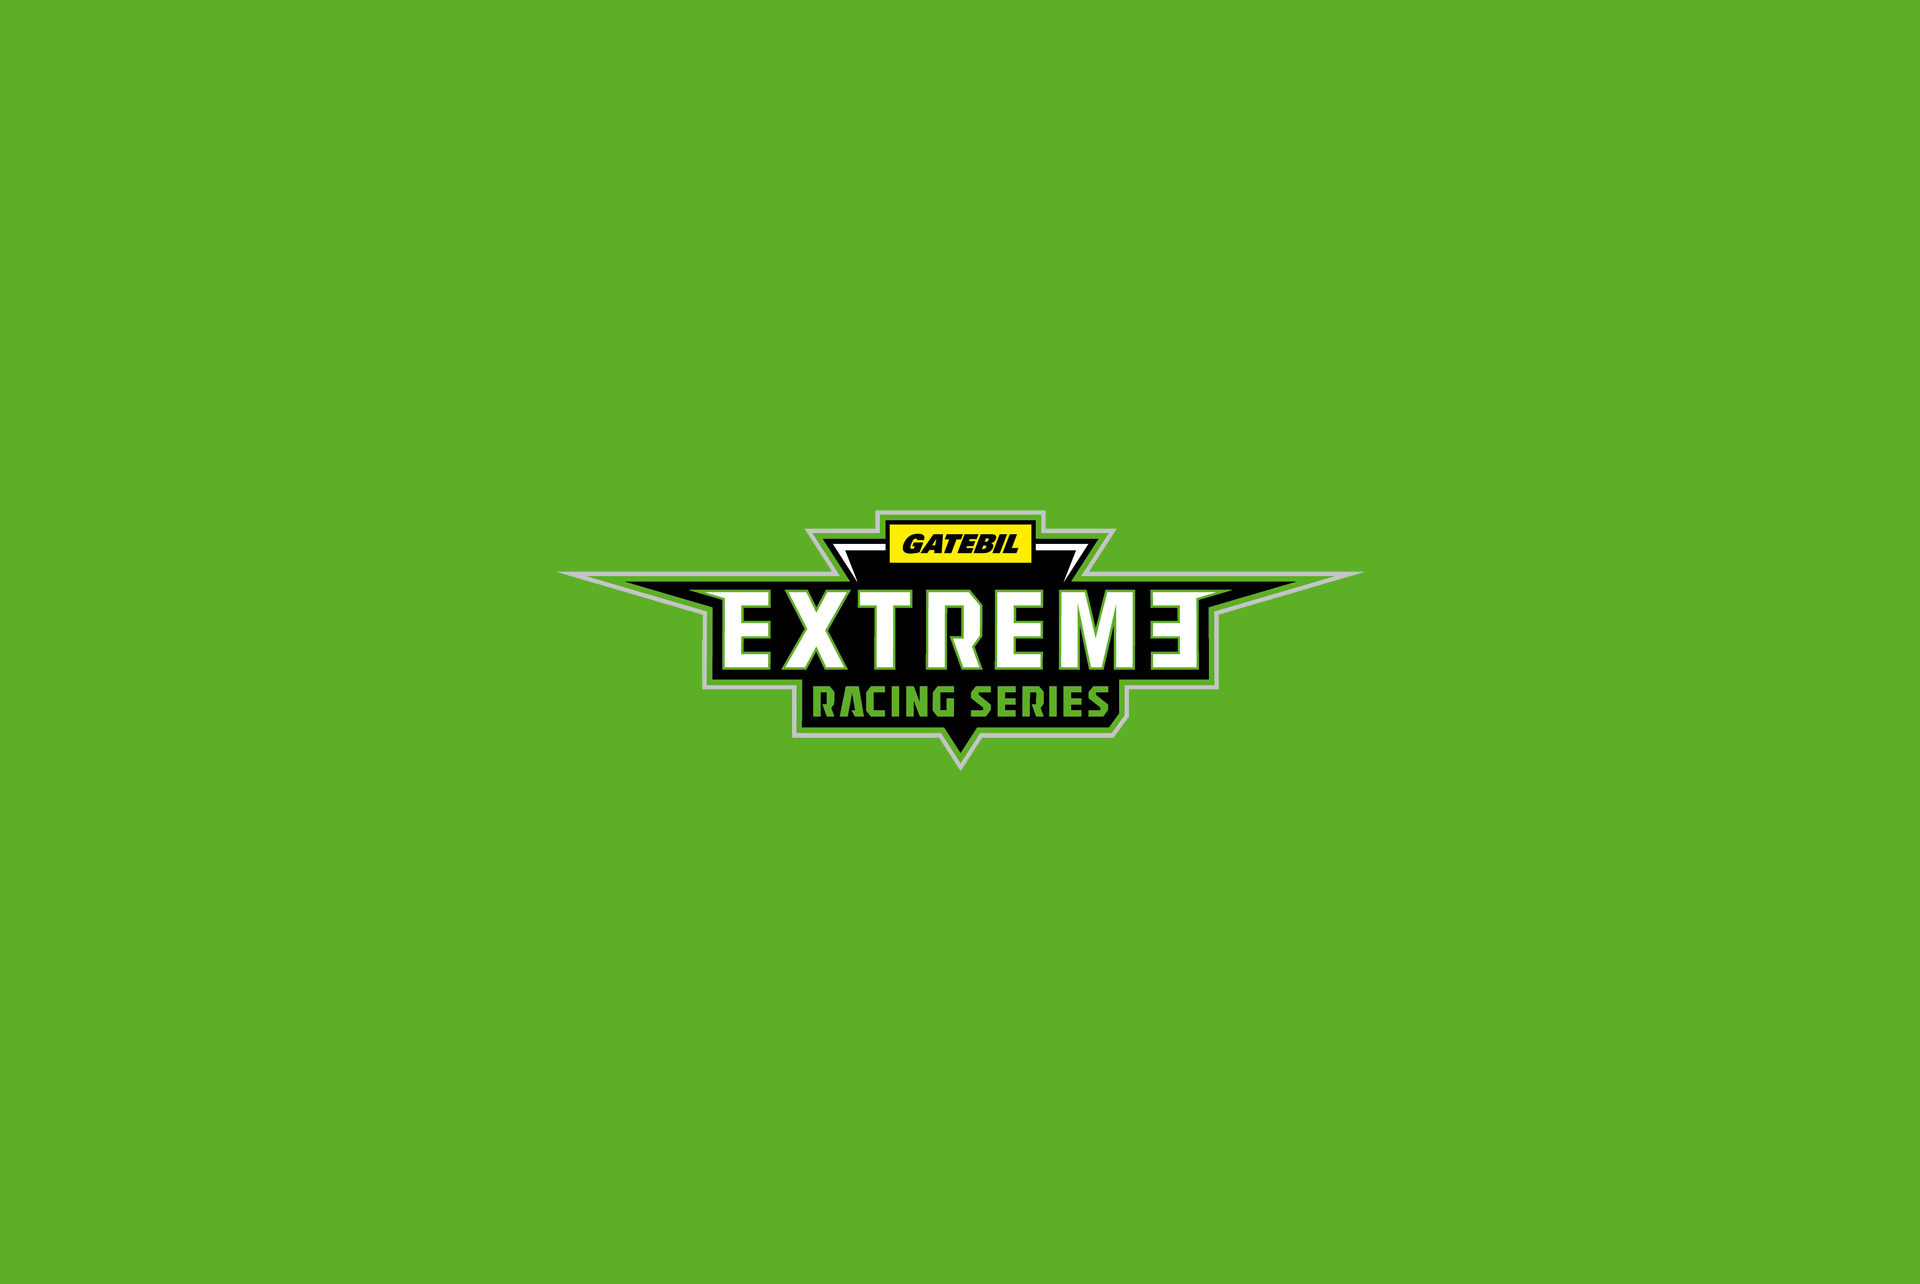 Logo Gatebil Extreme Racing Series